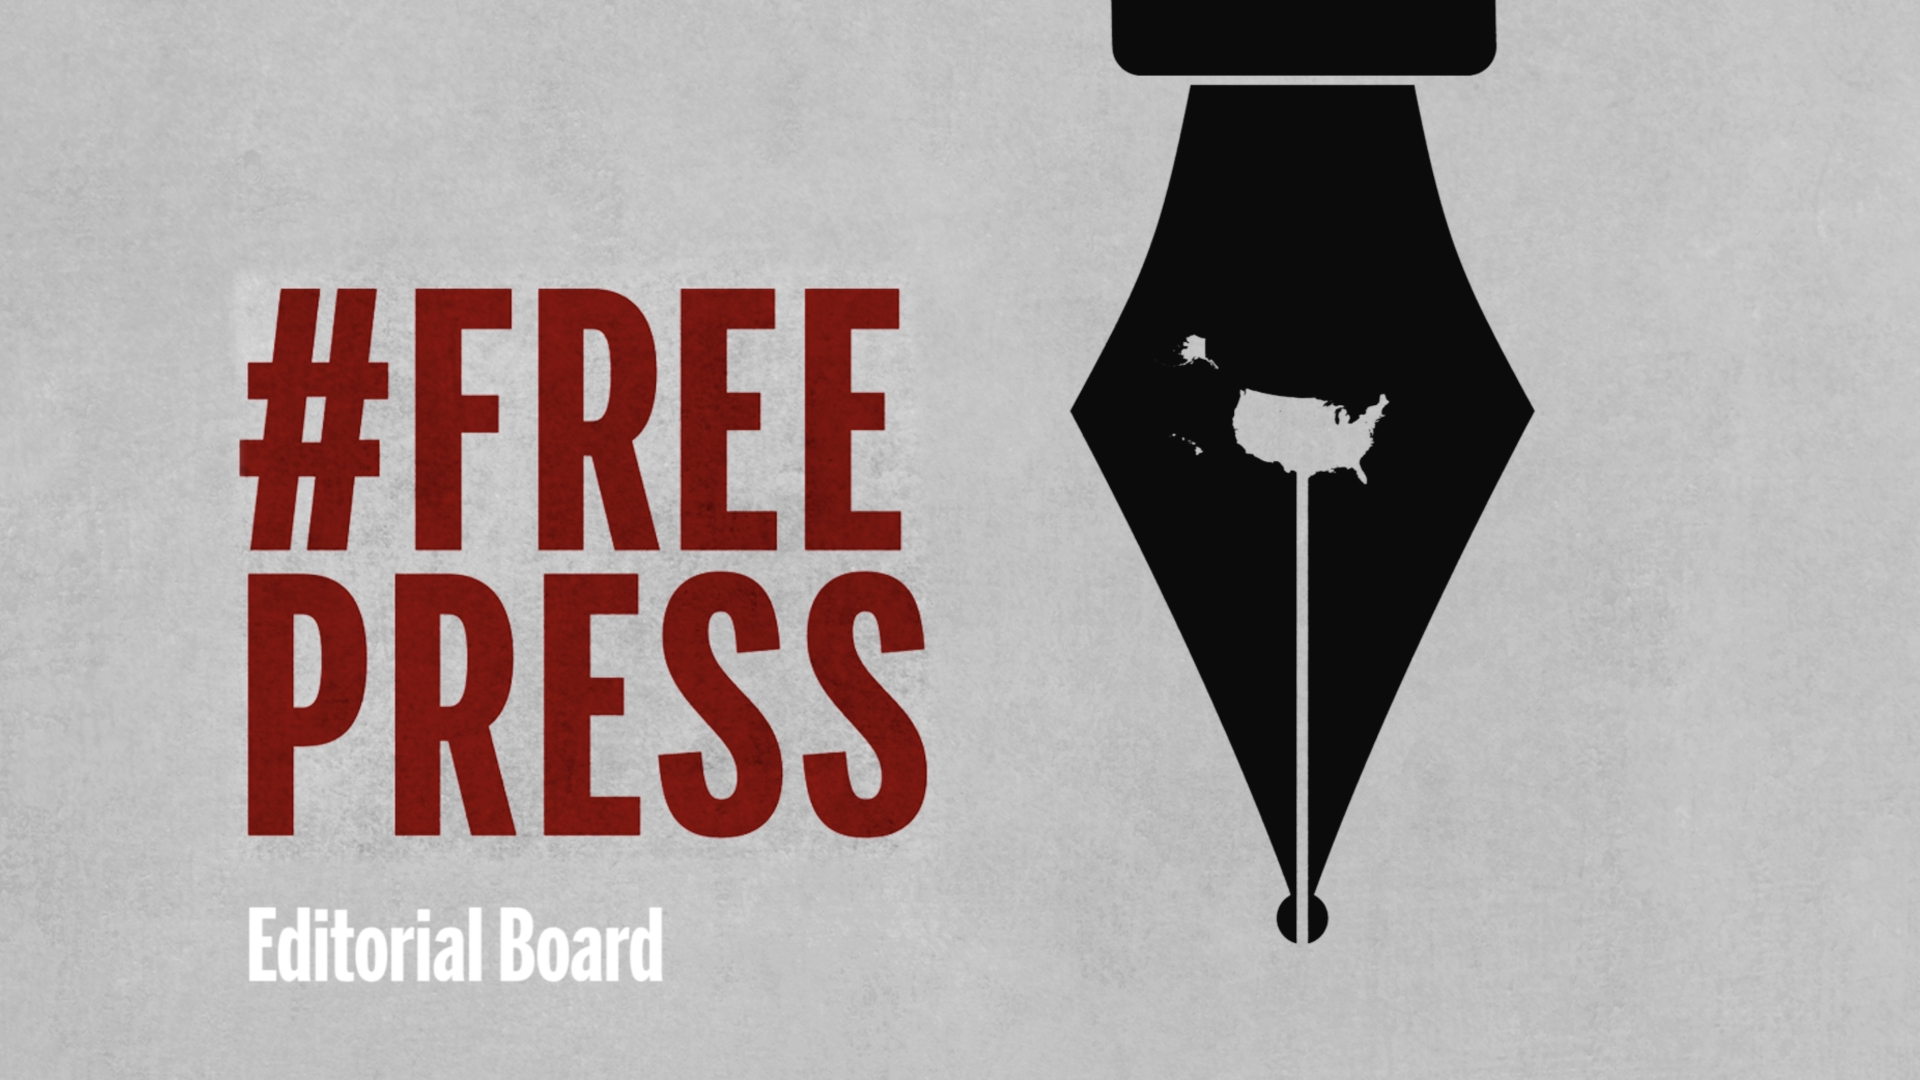 More than 300 newspapers join Globe effort on freedom of the